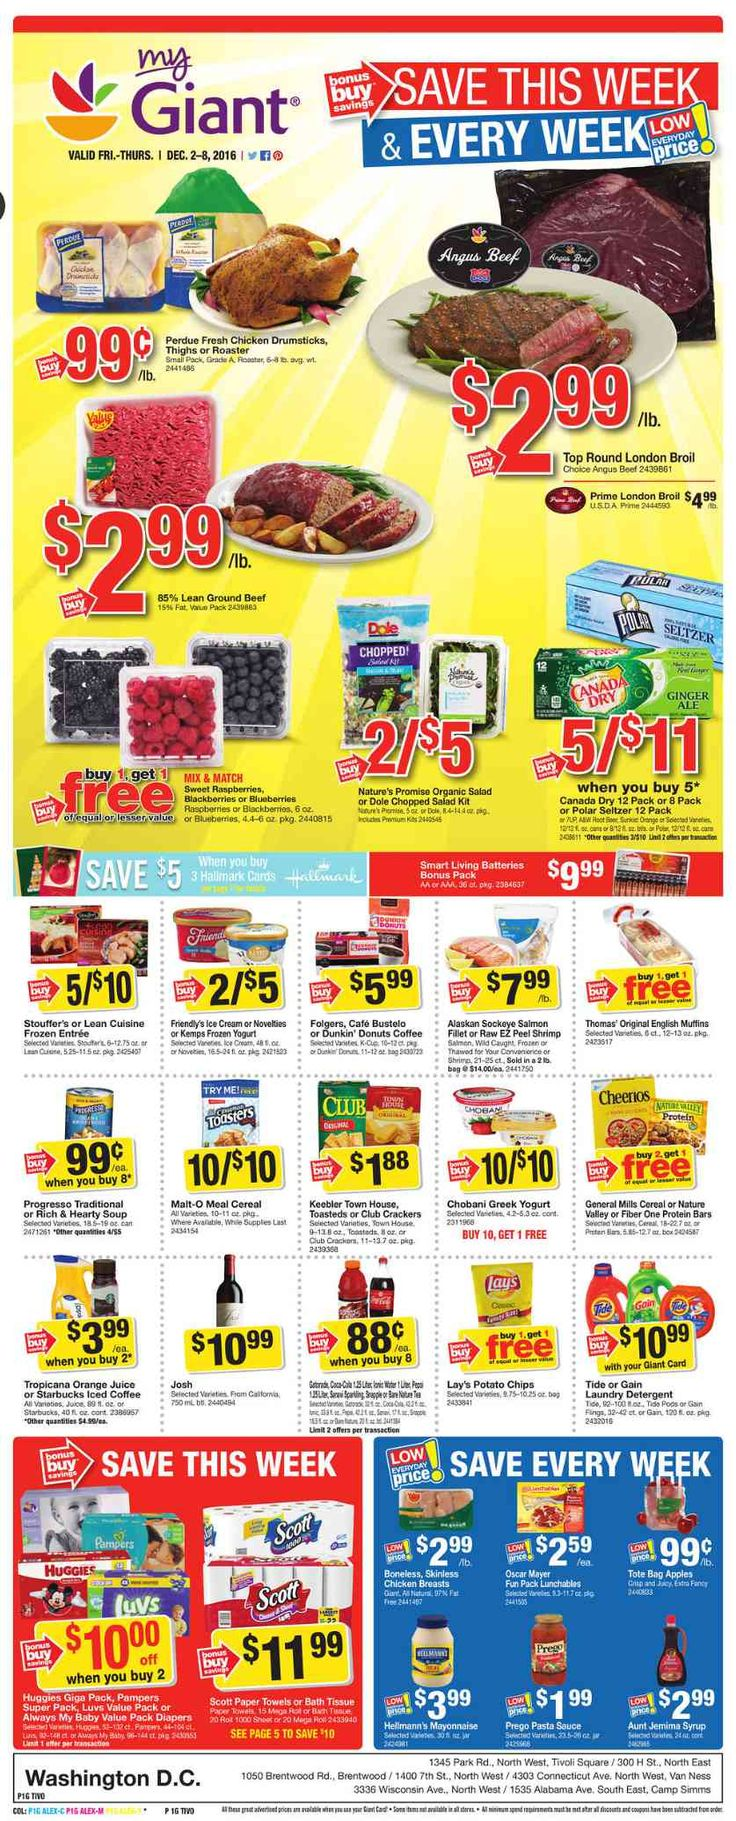 Giant Food Weekly Ad December 2 - 8, 2016 - http://www.olcatalog.com/grocery/giant-food-weekly-ad.html